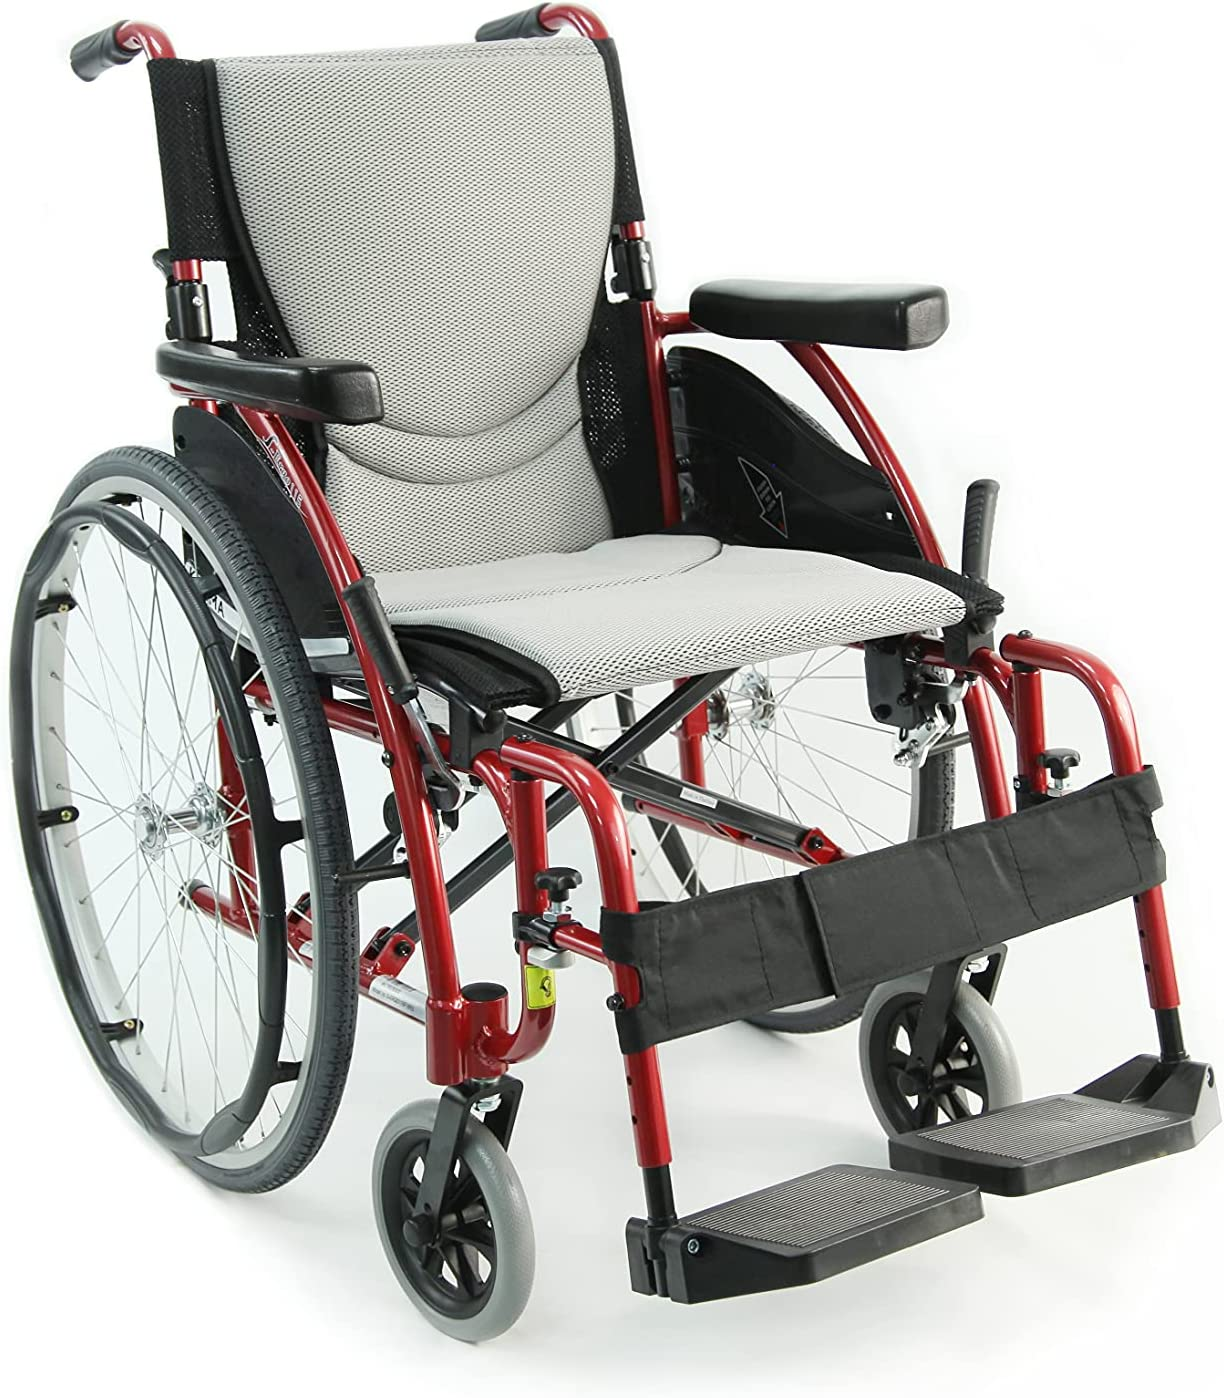 Max 41% OFF Karman S-115 25 lbs Ultra New color Light Ergonomic Remova Wheelchair with